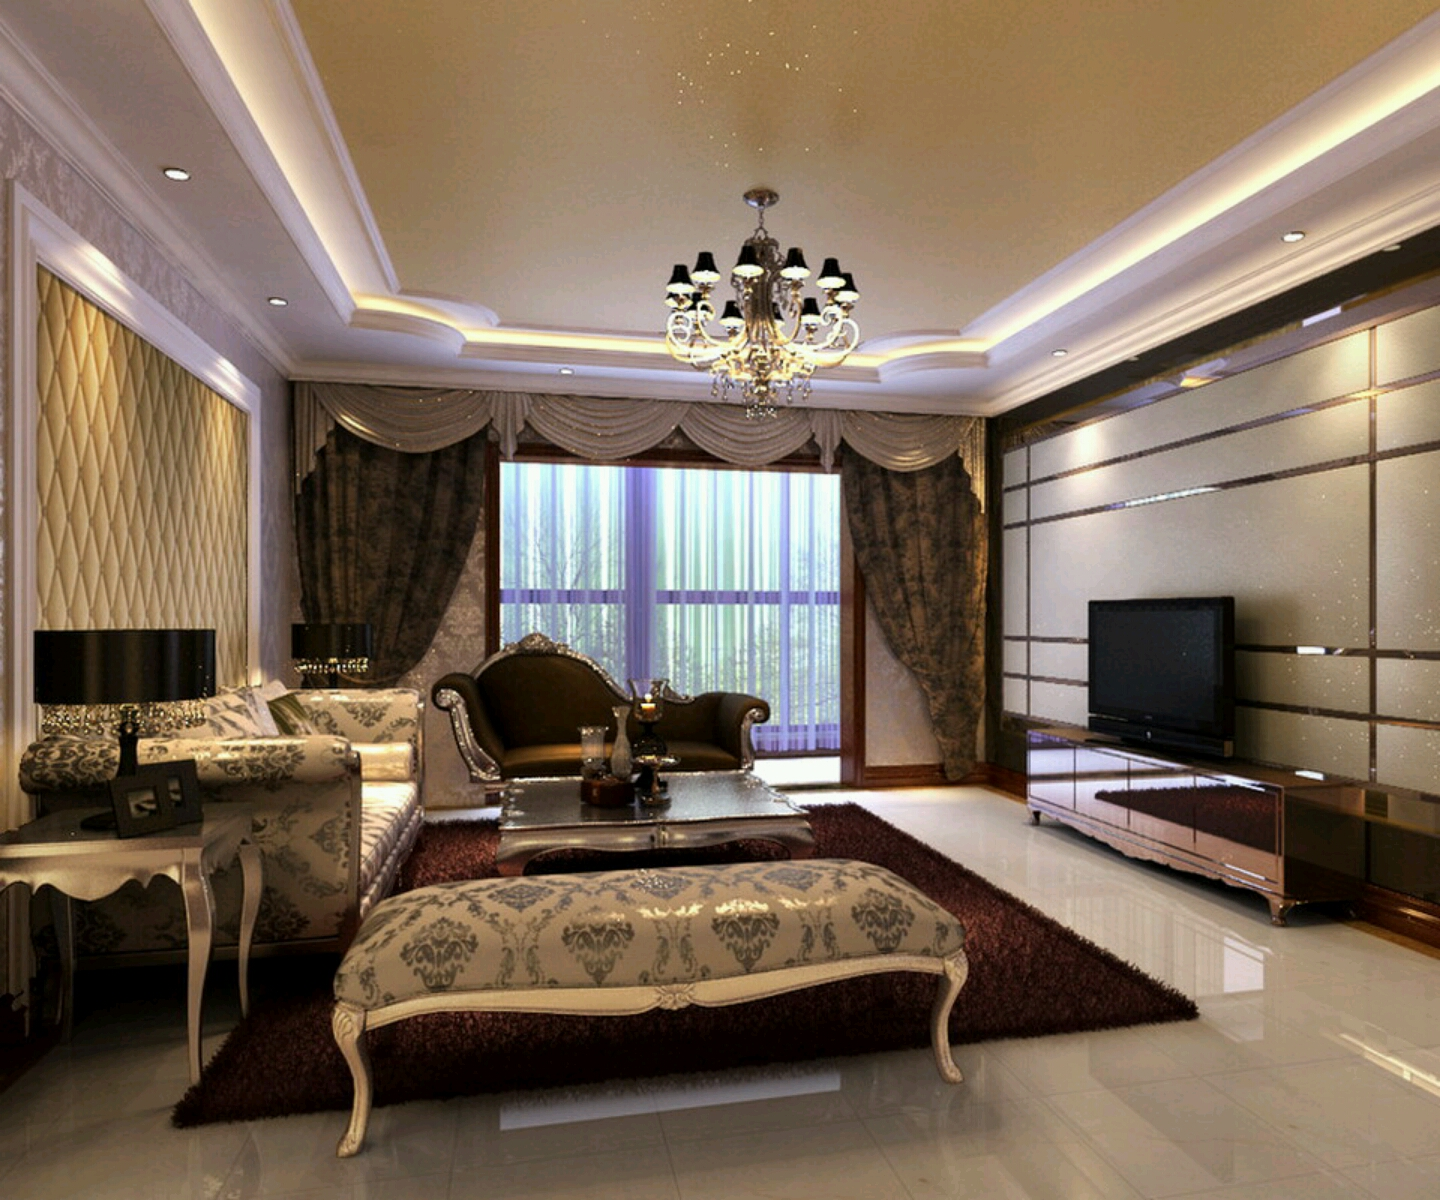 New home designs latest luxury homes interior decoration living room designs ideas Room interior decoration ideas